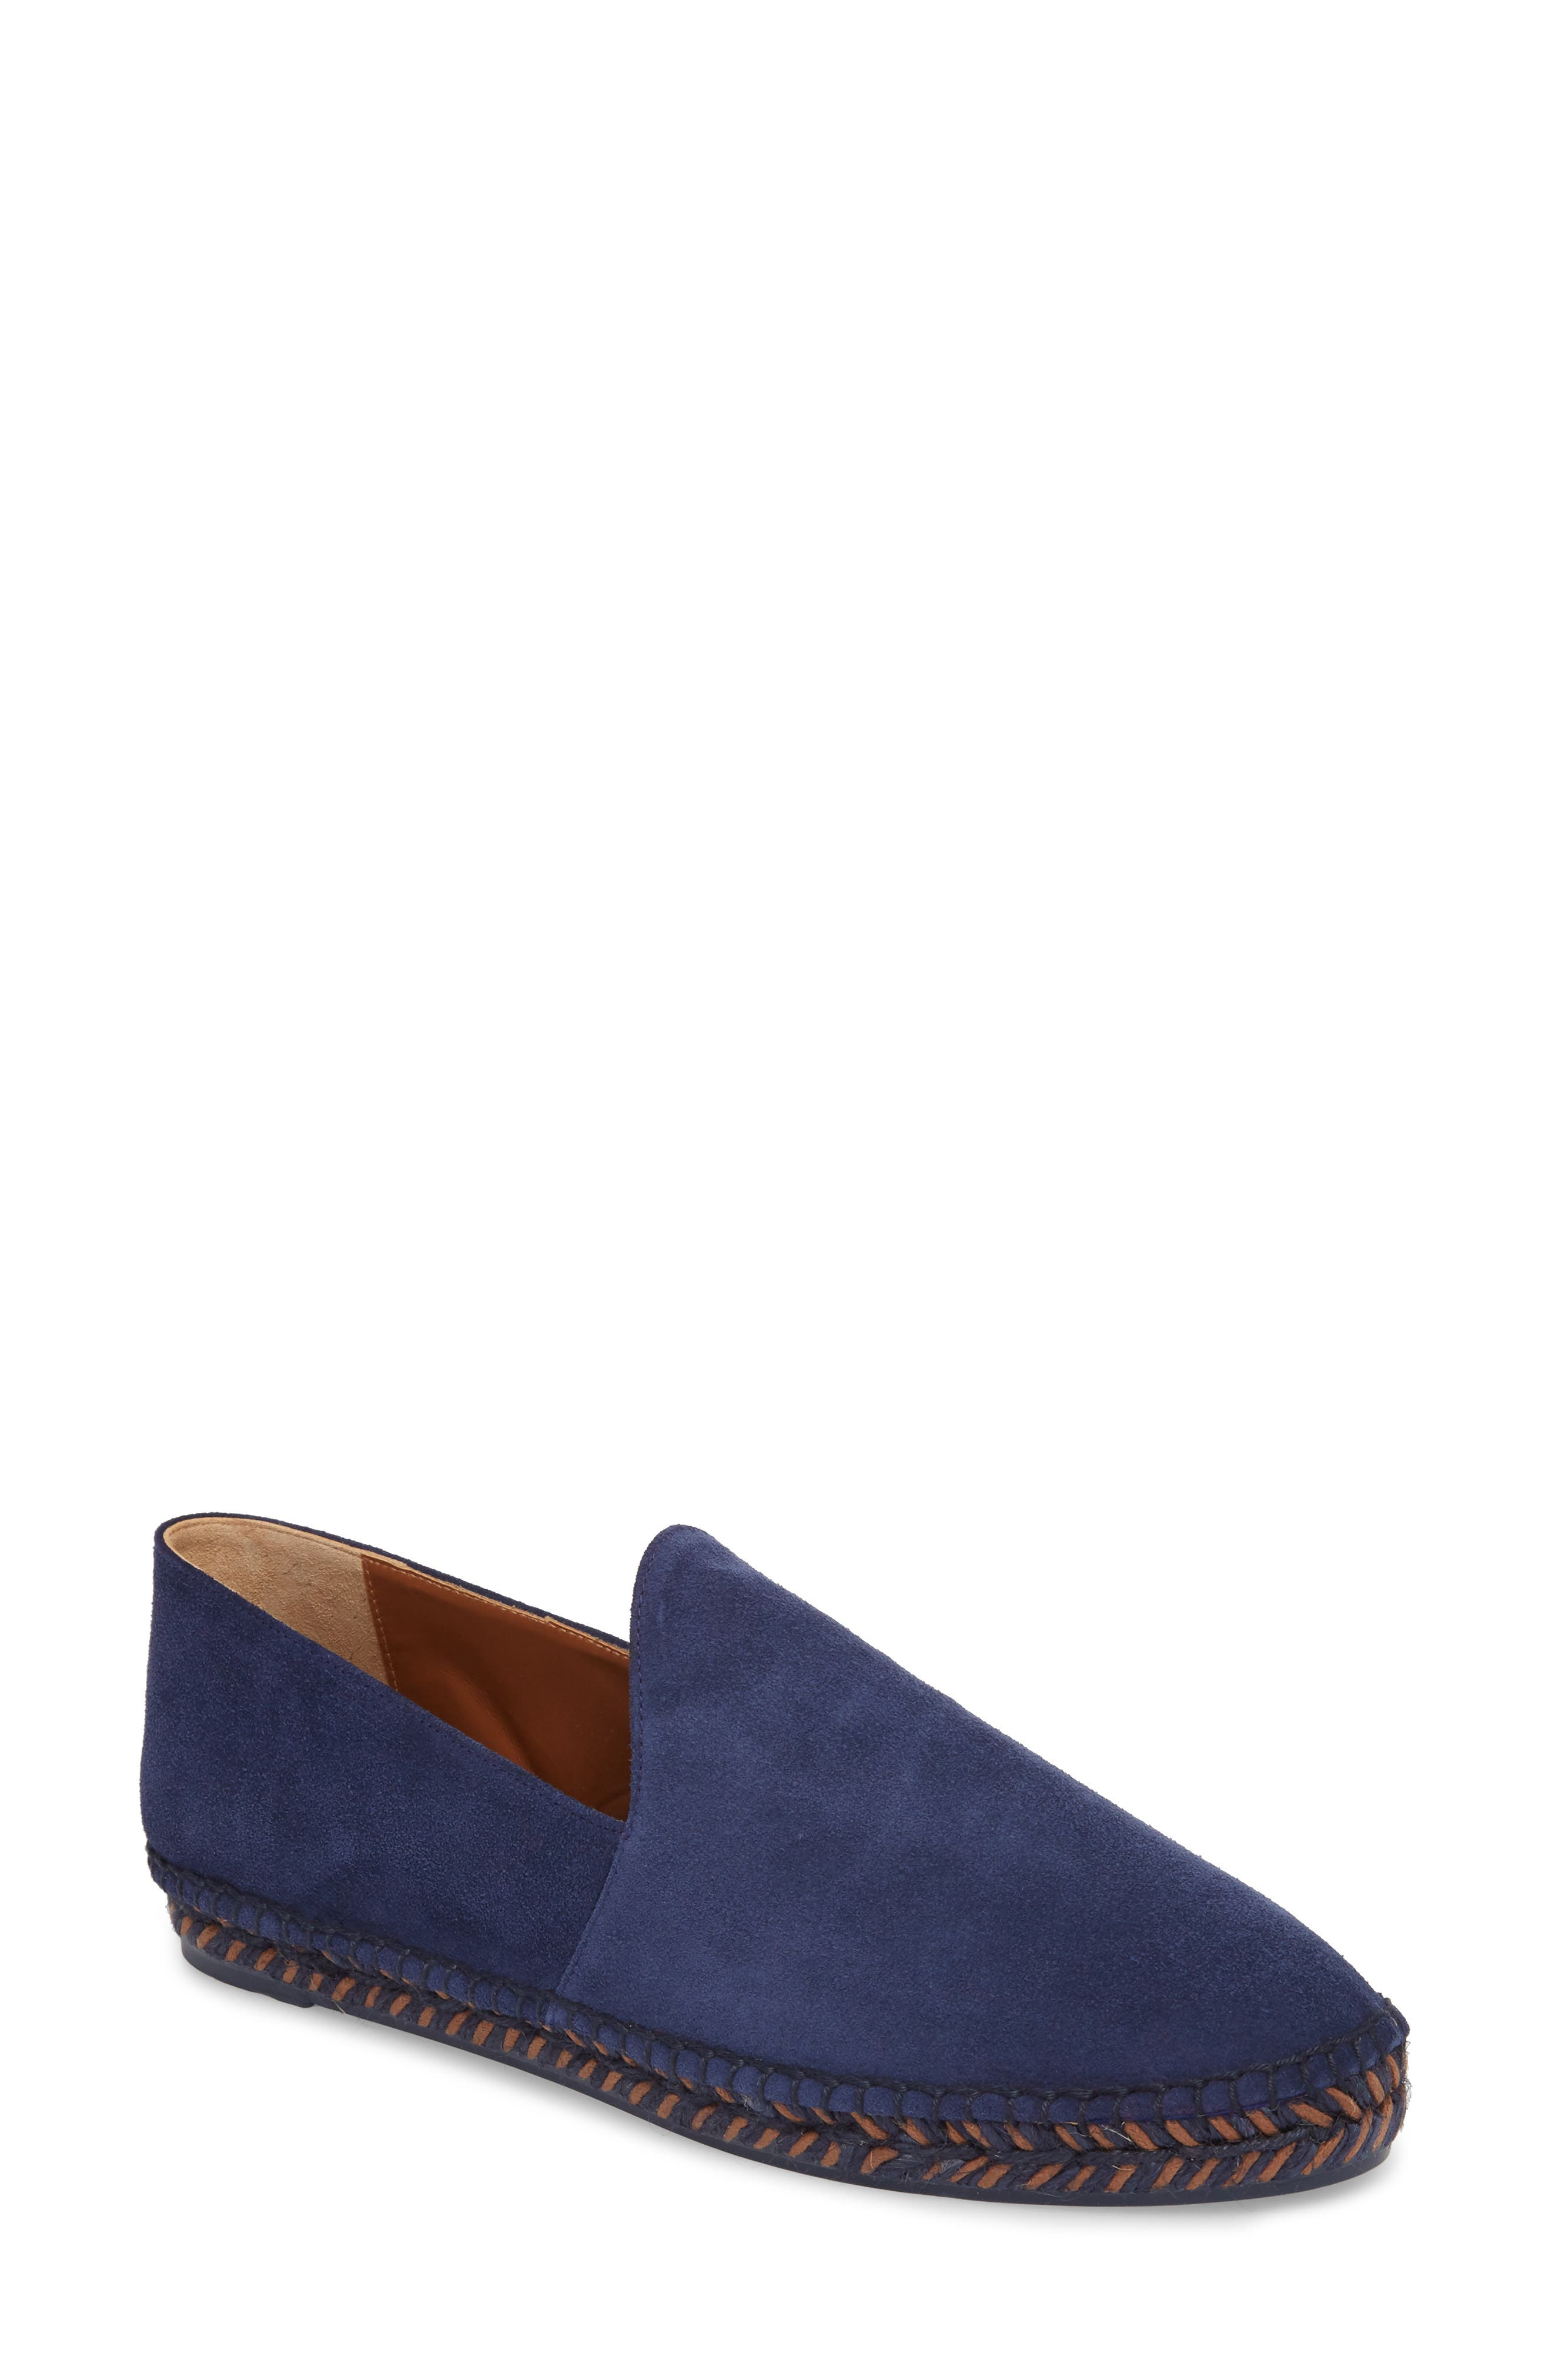 Haddie Espadrille Loafer,                             Main thumbnail 3, color,